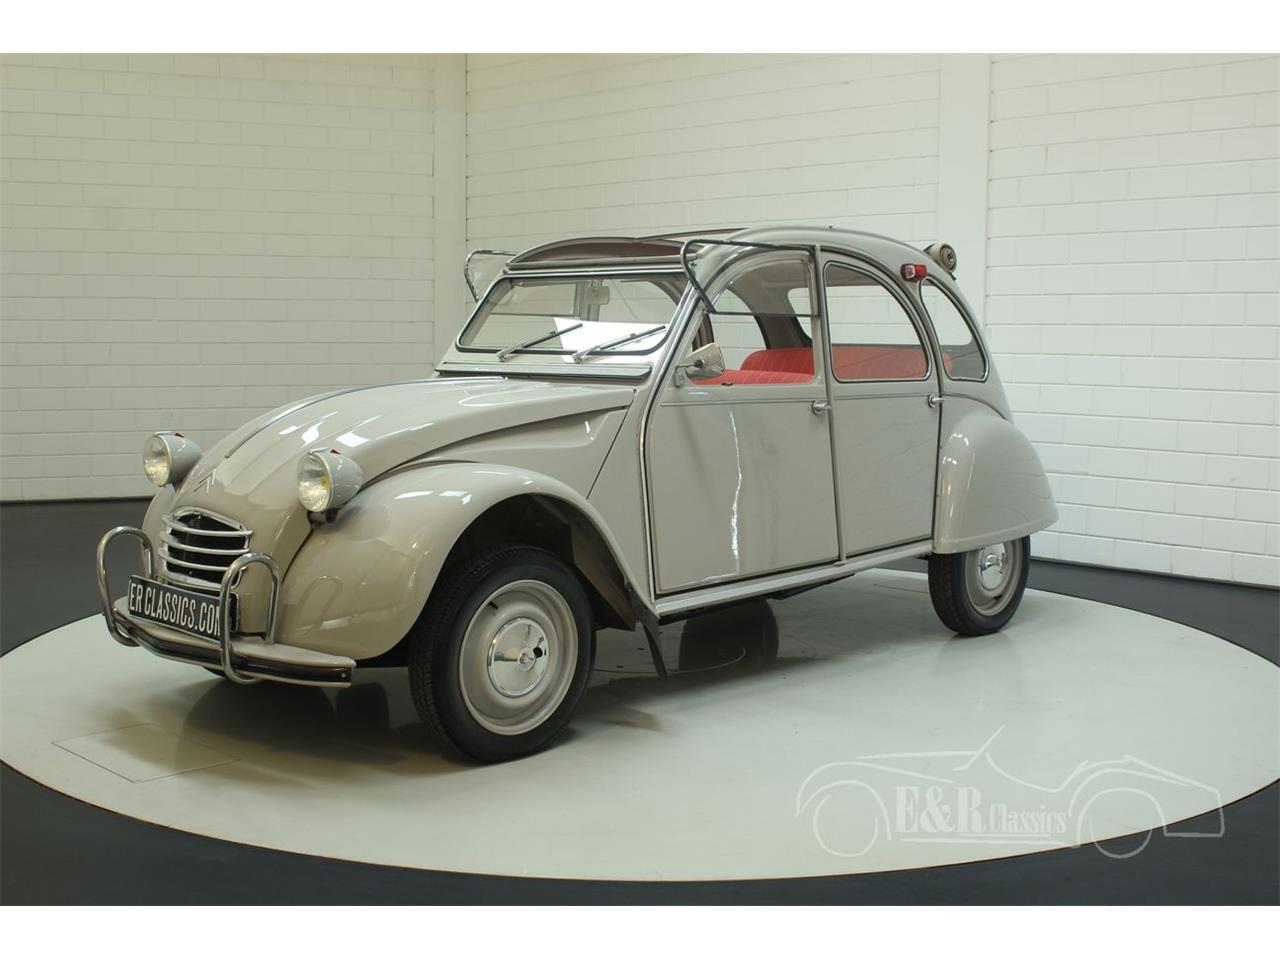 Large Picture of '66 Citroen 2CV located in - Keine Angabe - - $22,550.00 - PGSV